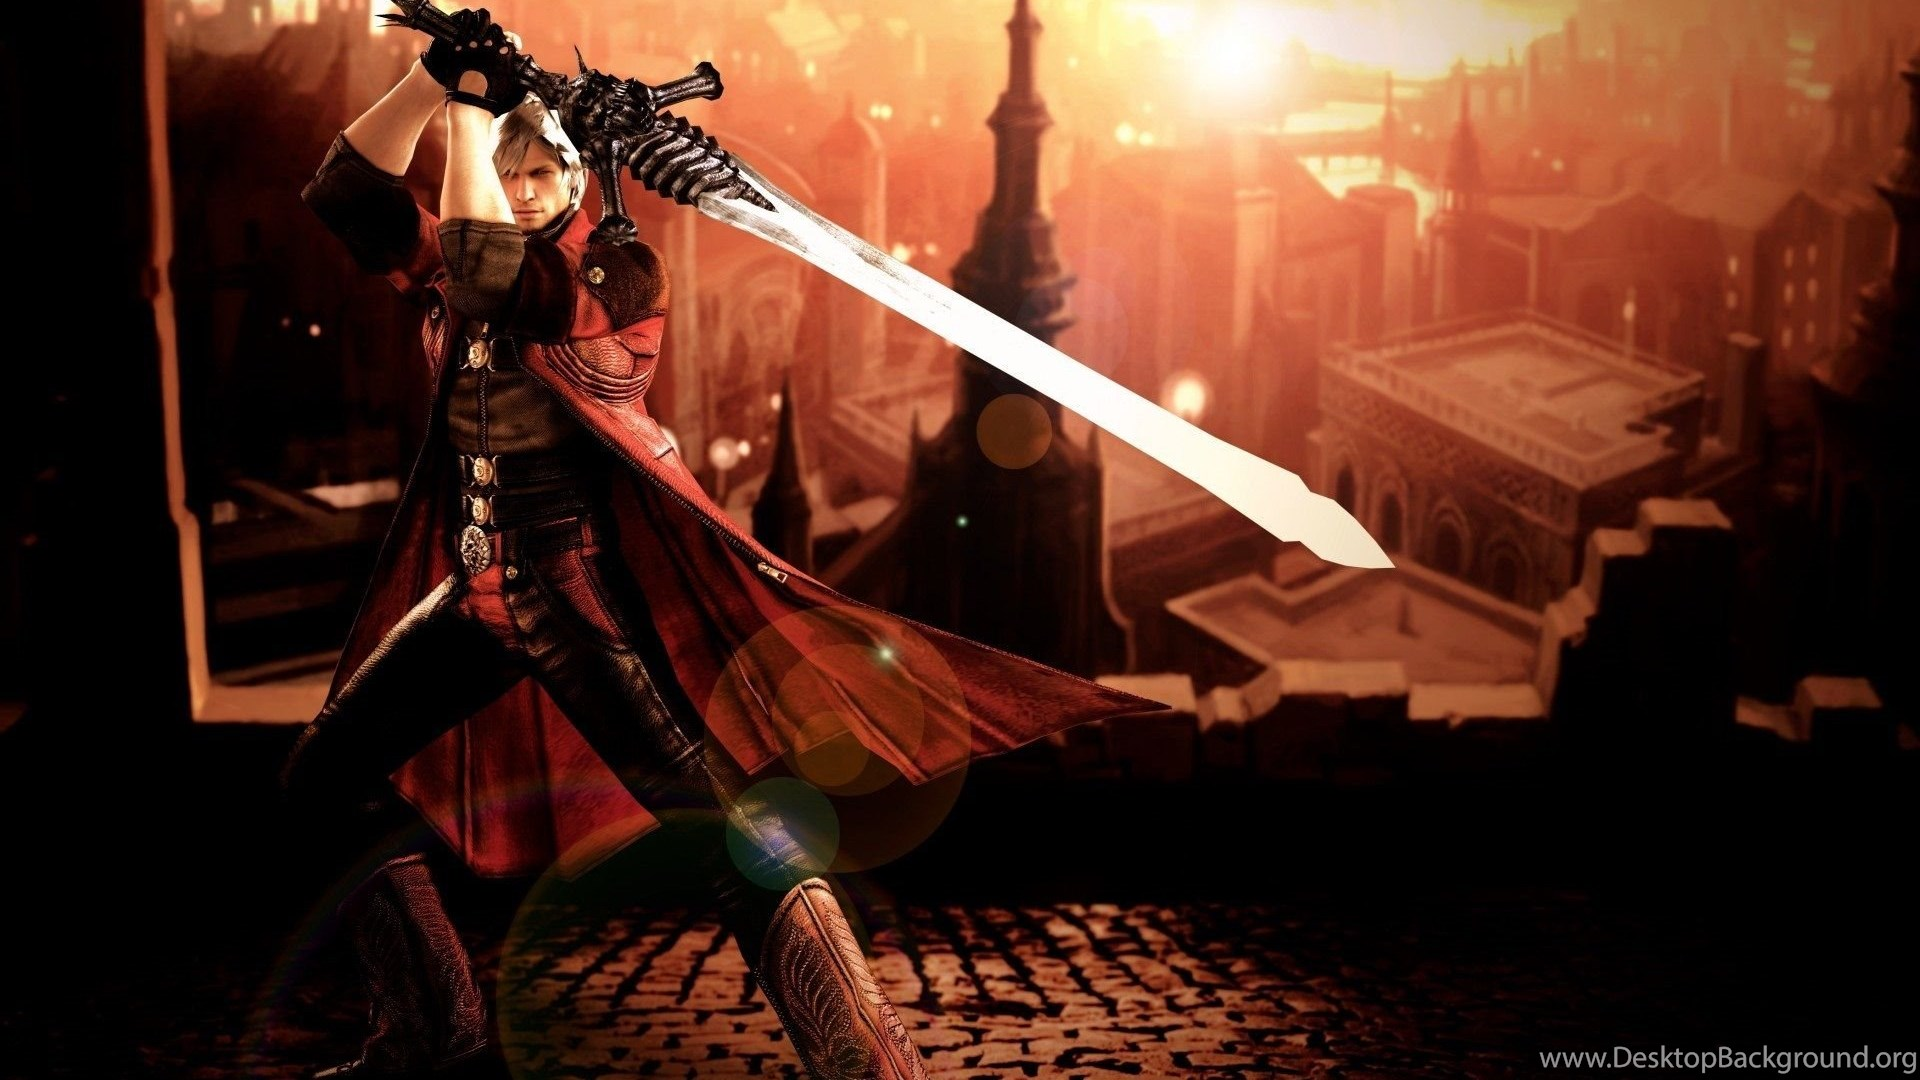 Devil May Cry 4 Dante Wallpapers Desktop Background